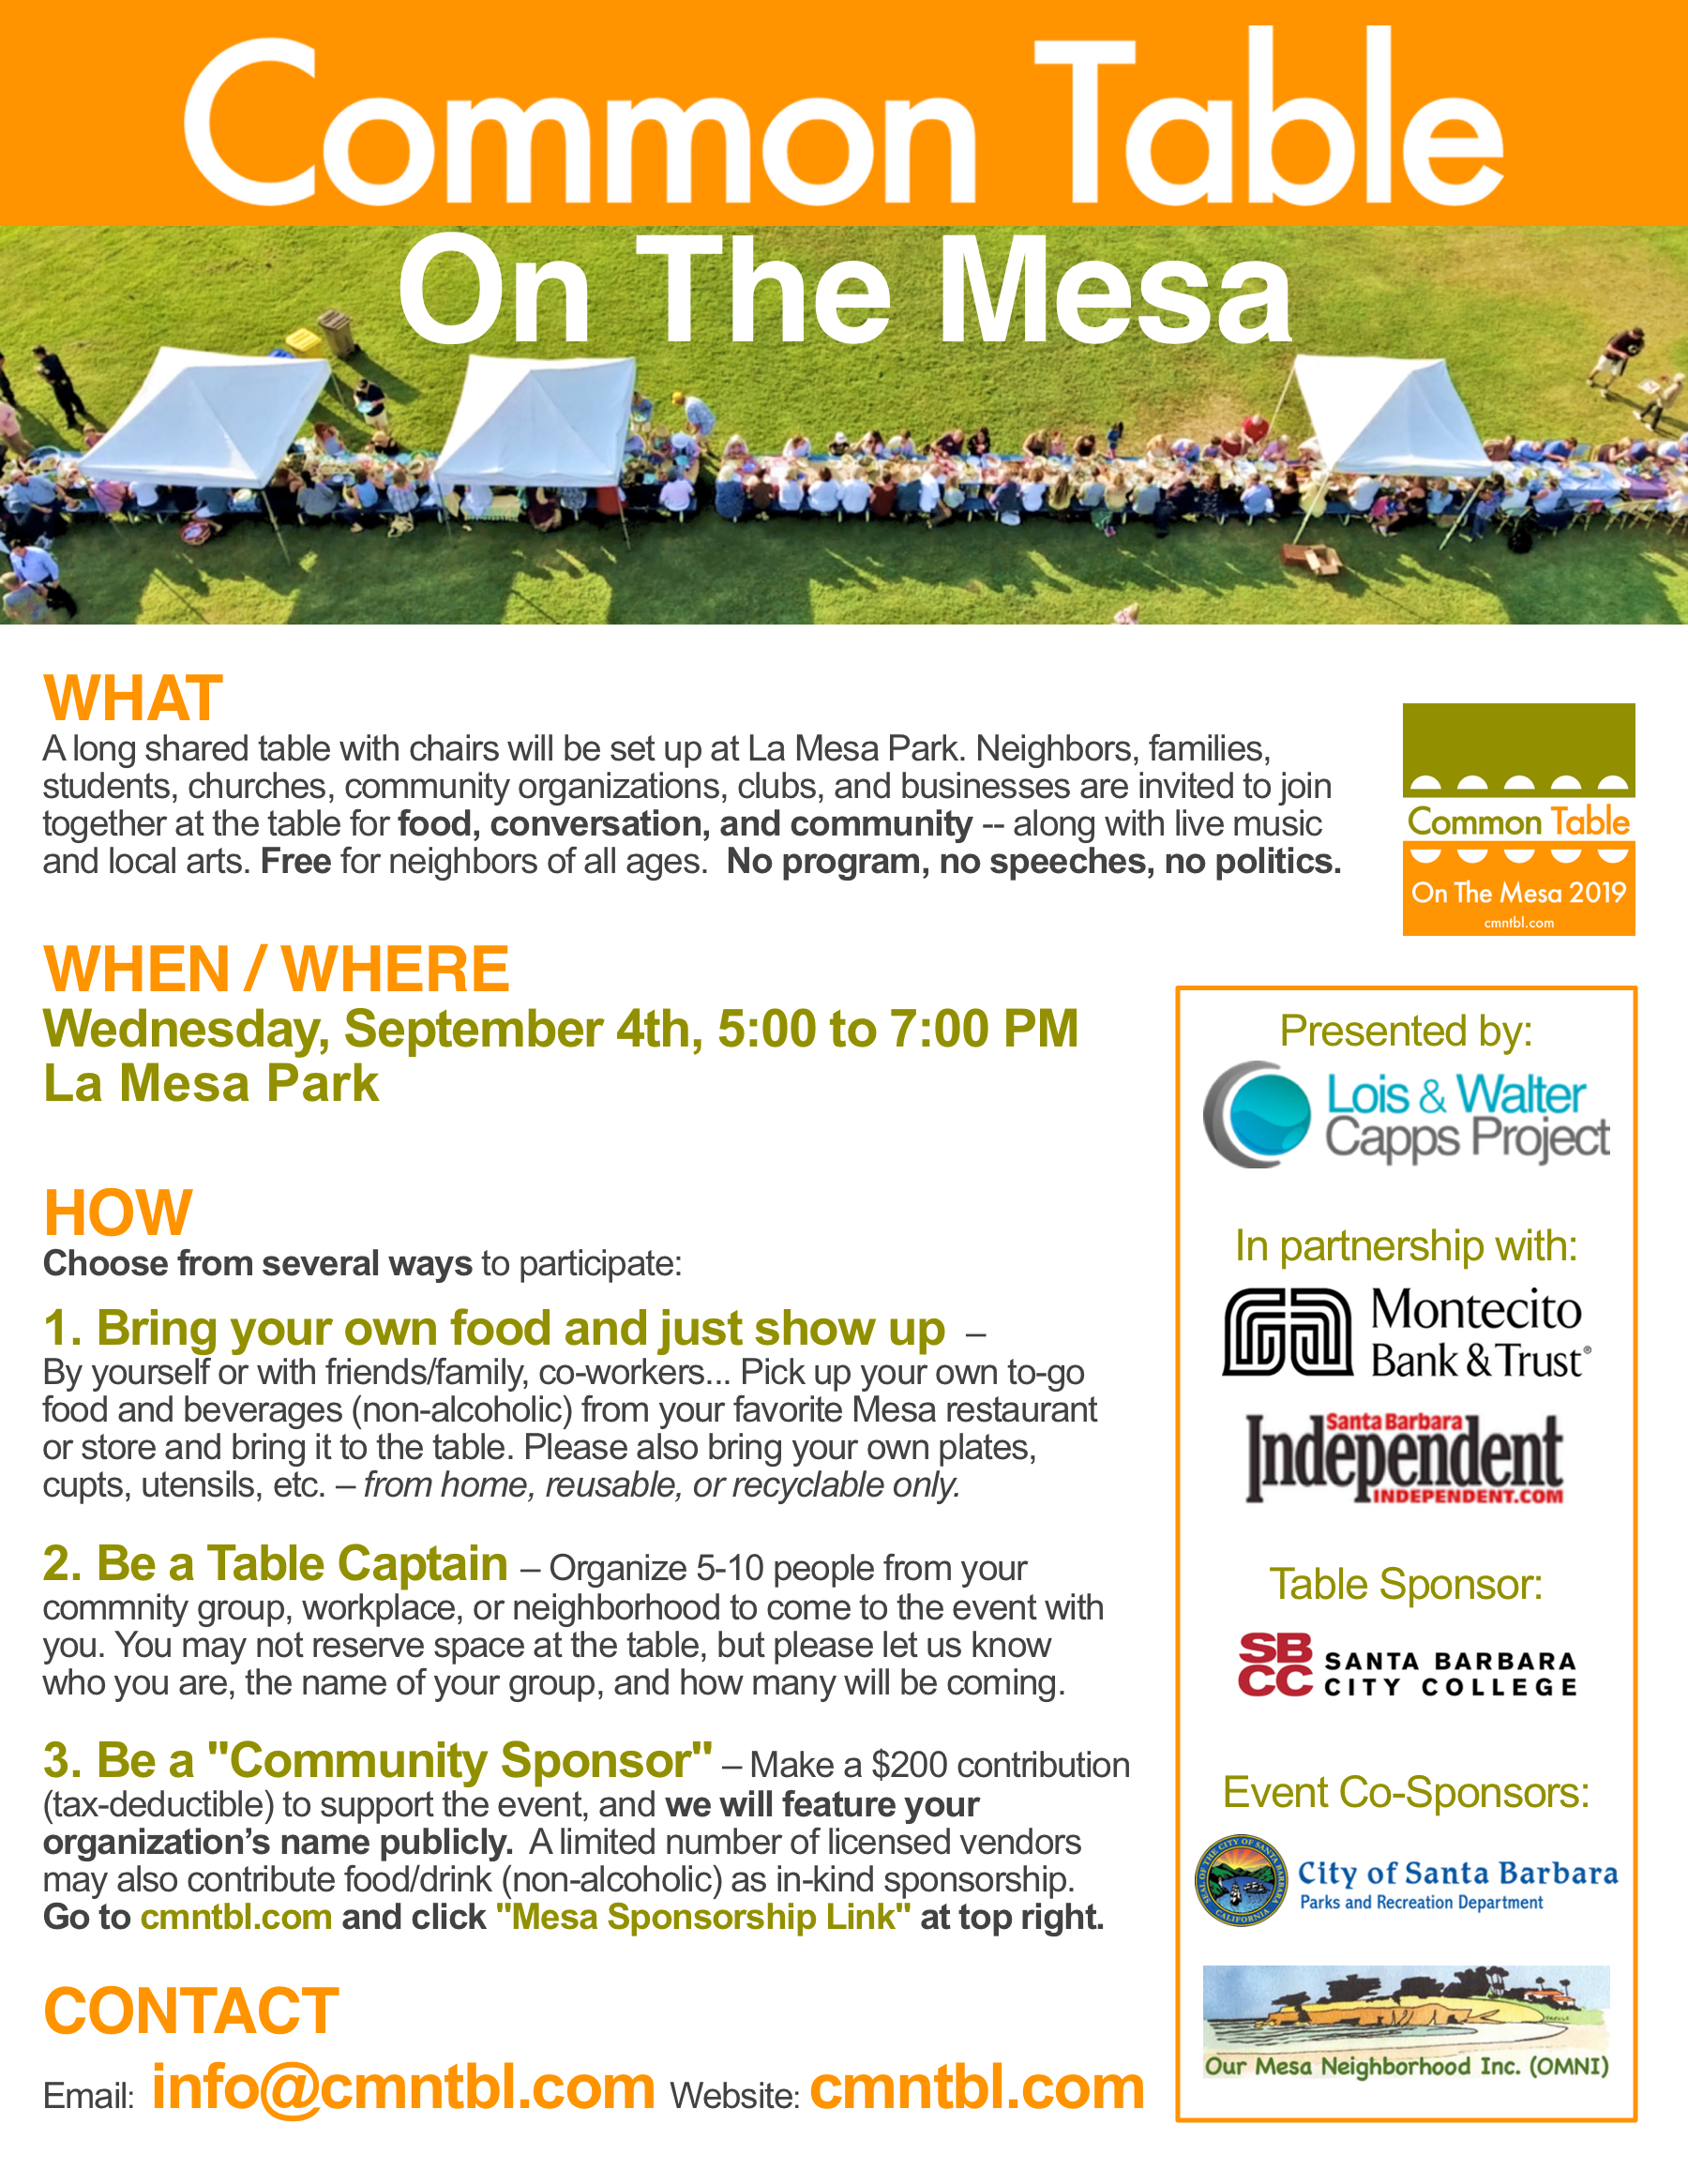 Click image to view or download event flyer -